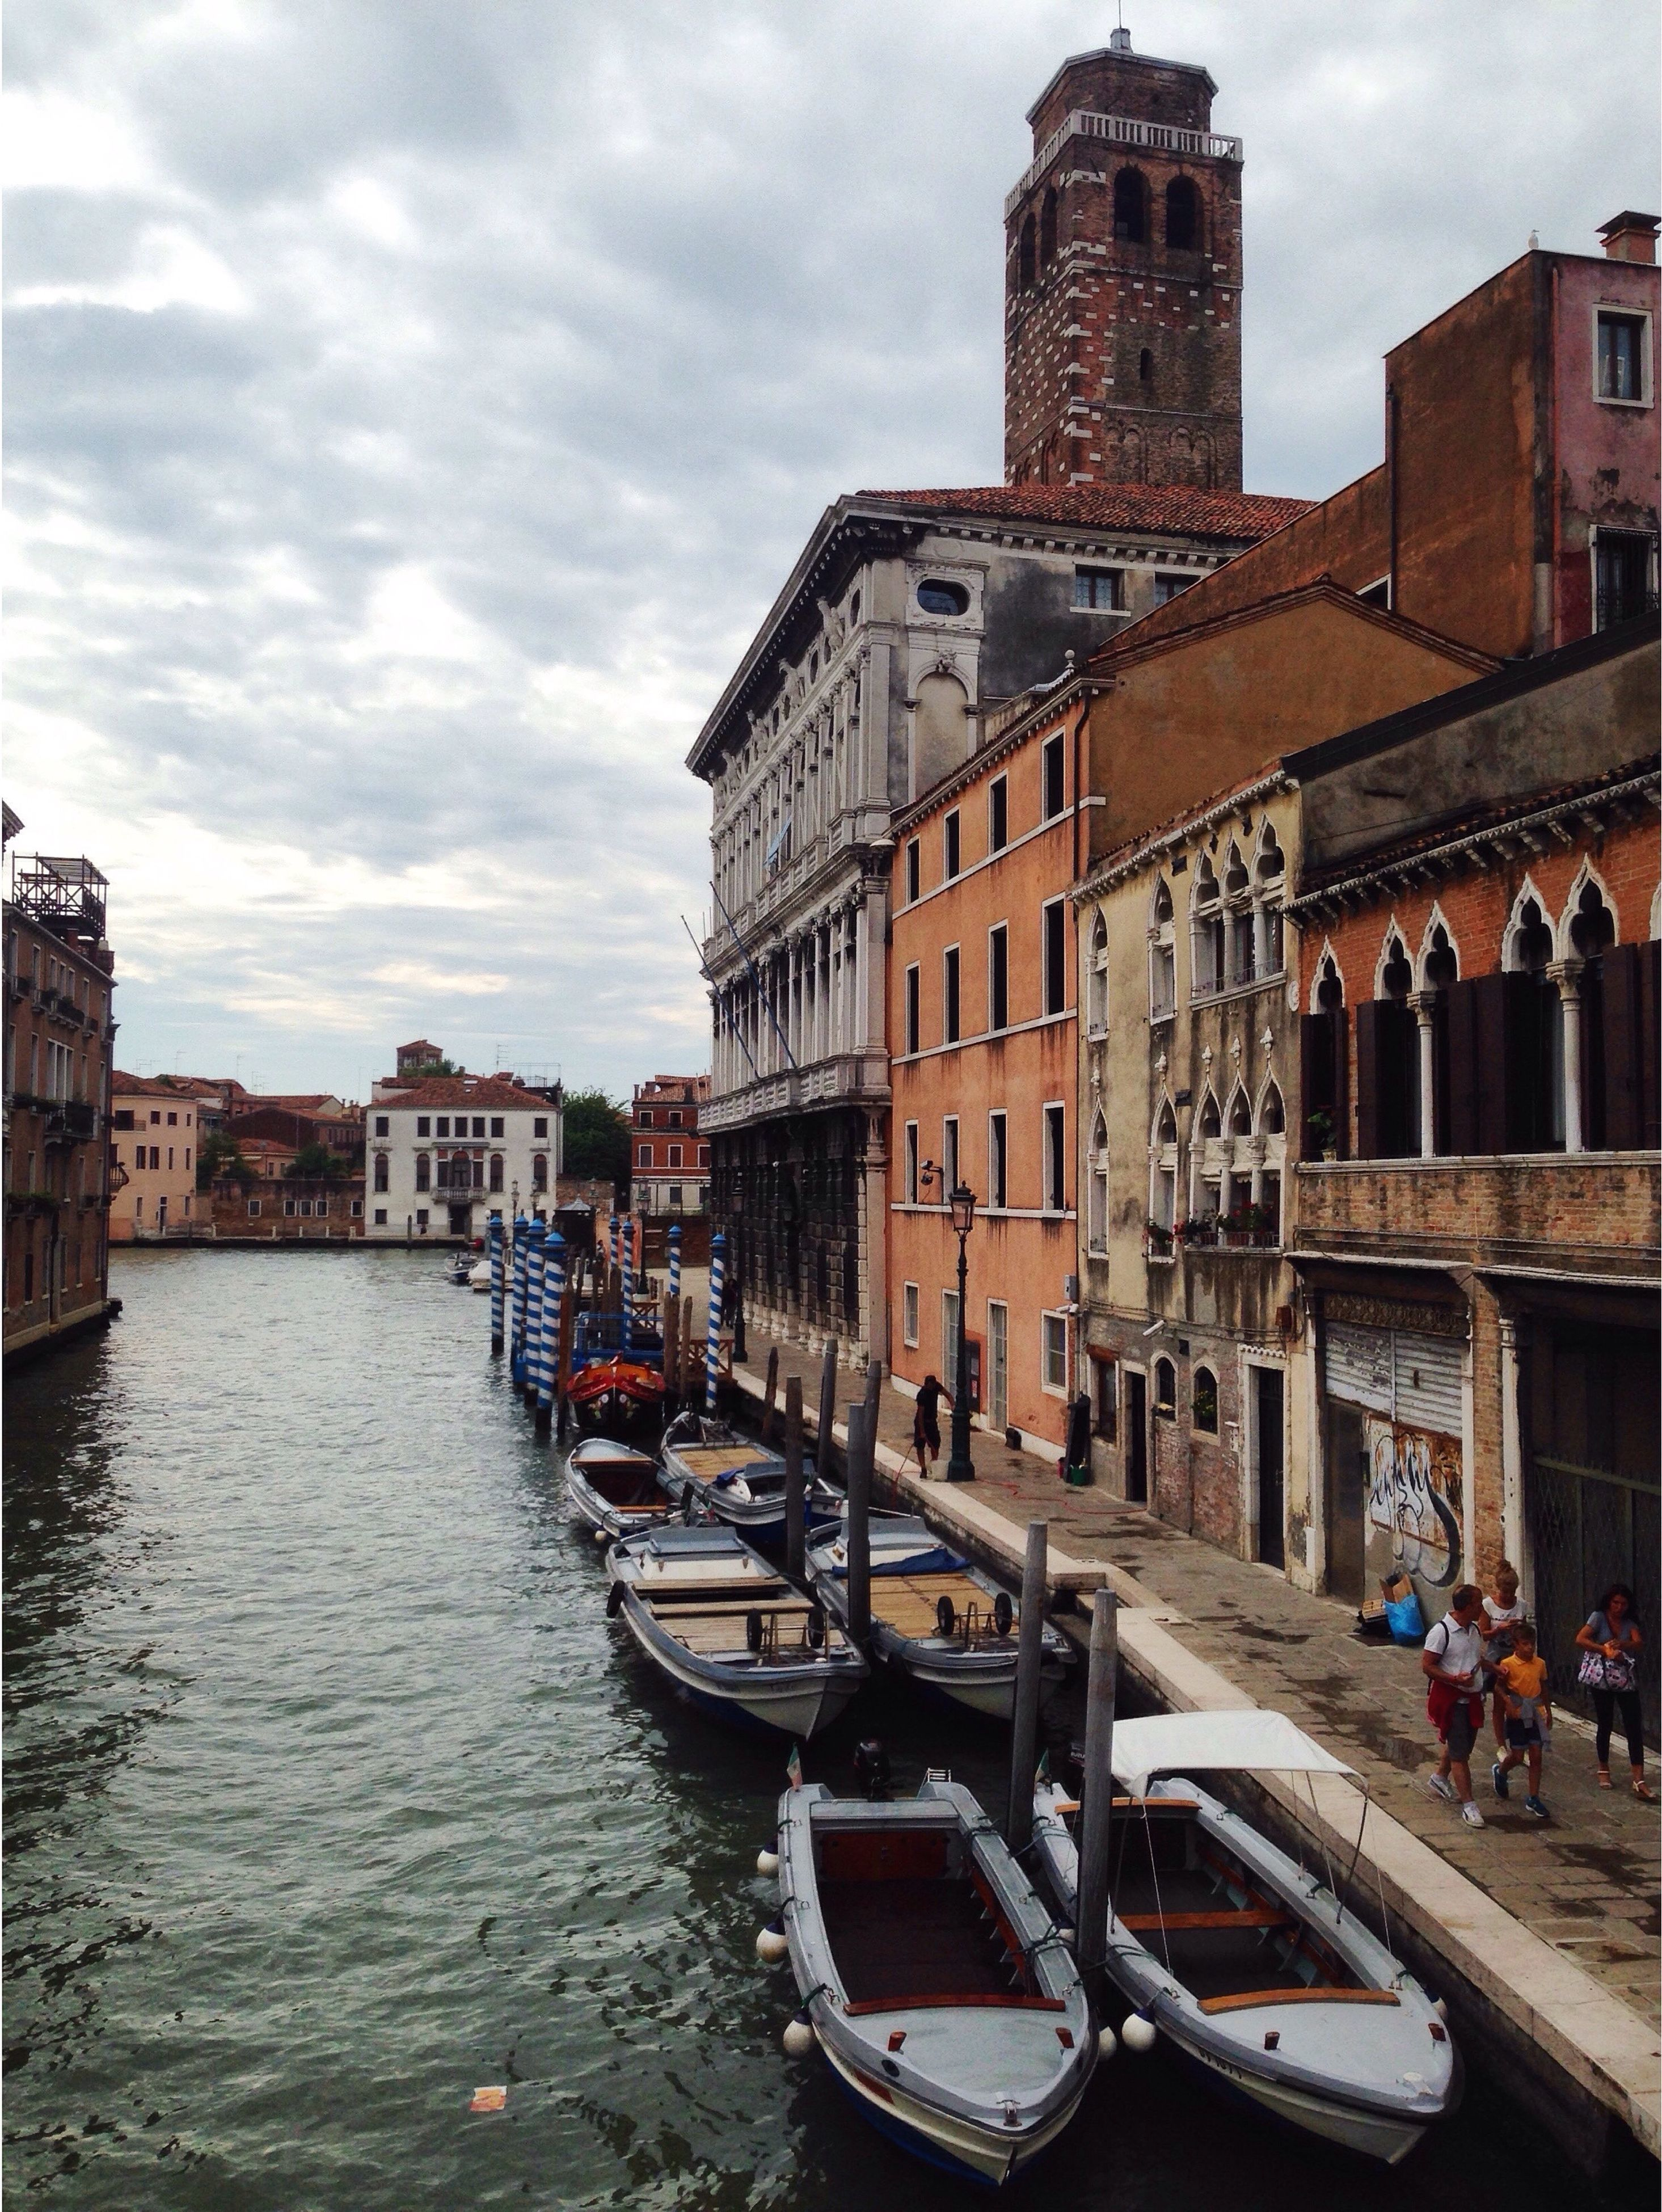 architecture, building exterior, built structure, nautical vessel, water, transportation, boat, canal, city, waterfront, sky, mode of transport, city life, travel destinations, cloud, day, culture, outdoors, gondola - traditional boat, cloud - sky, bridge, tourism, history, old town, cloudy